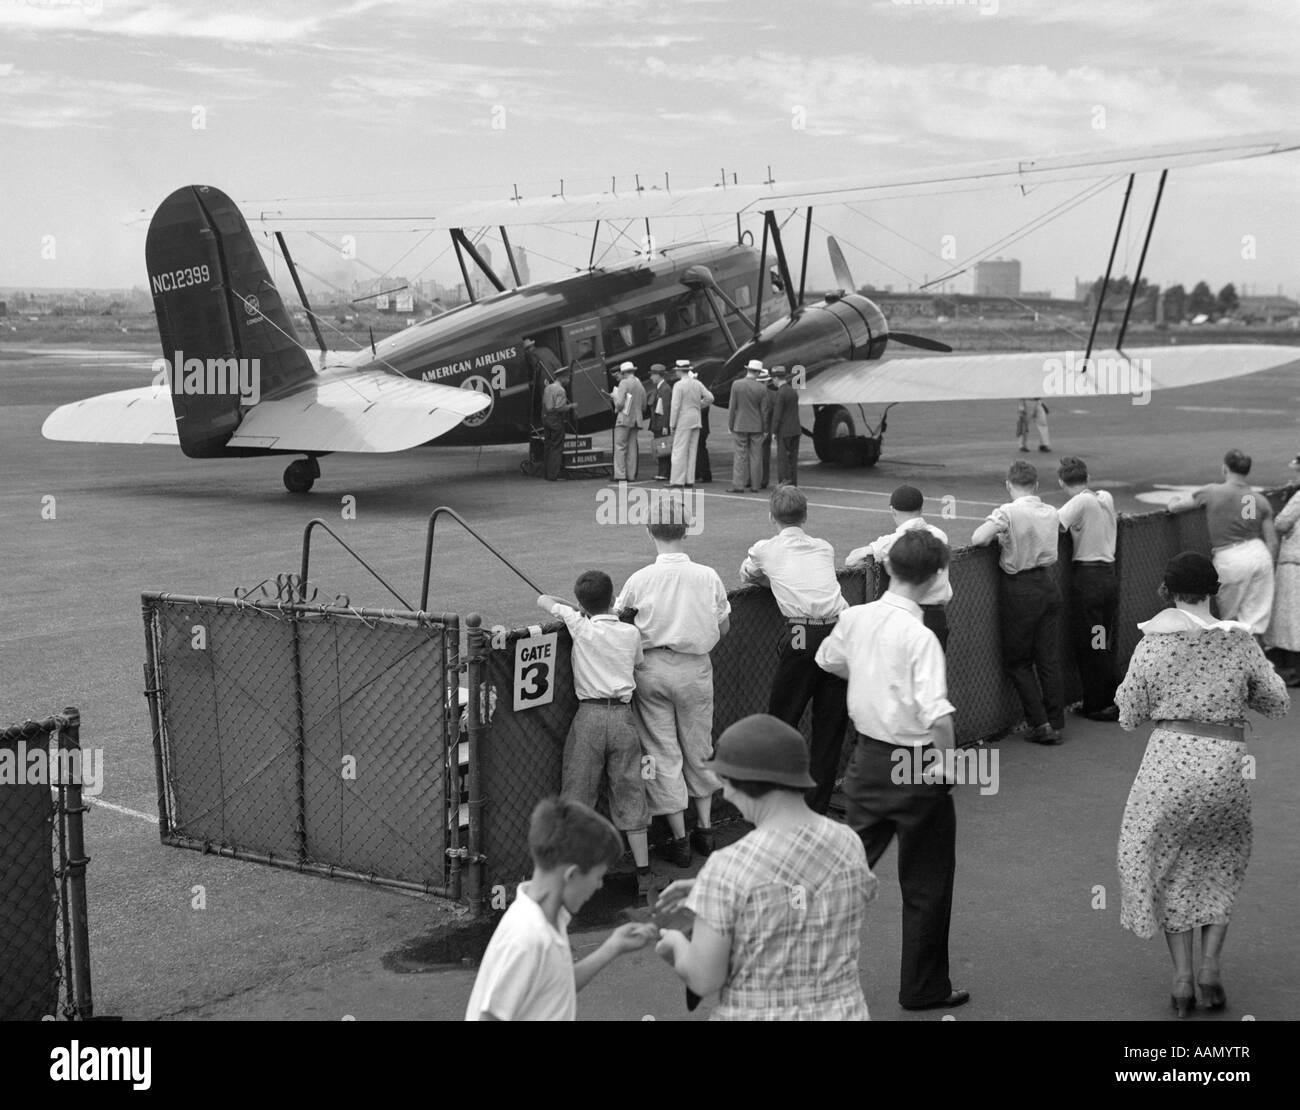 1930s PASSENGERS BOARDING AMERICAN AIRLINES CONDOR BIPLANE AIRPLANE FOR COMMERCIAL FLIGHT FROM NEWARK NEW JERSEY - Stock Image